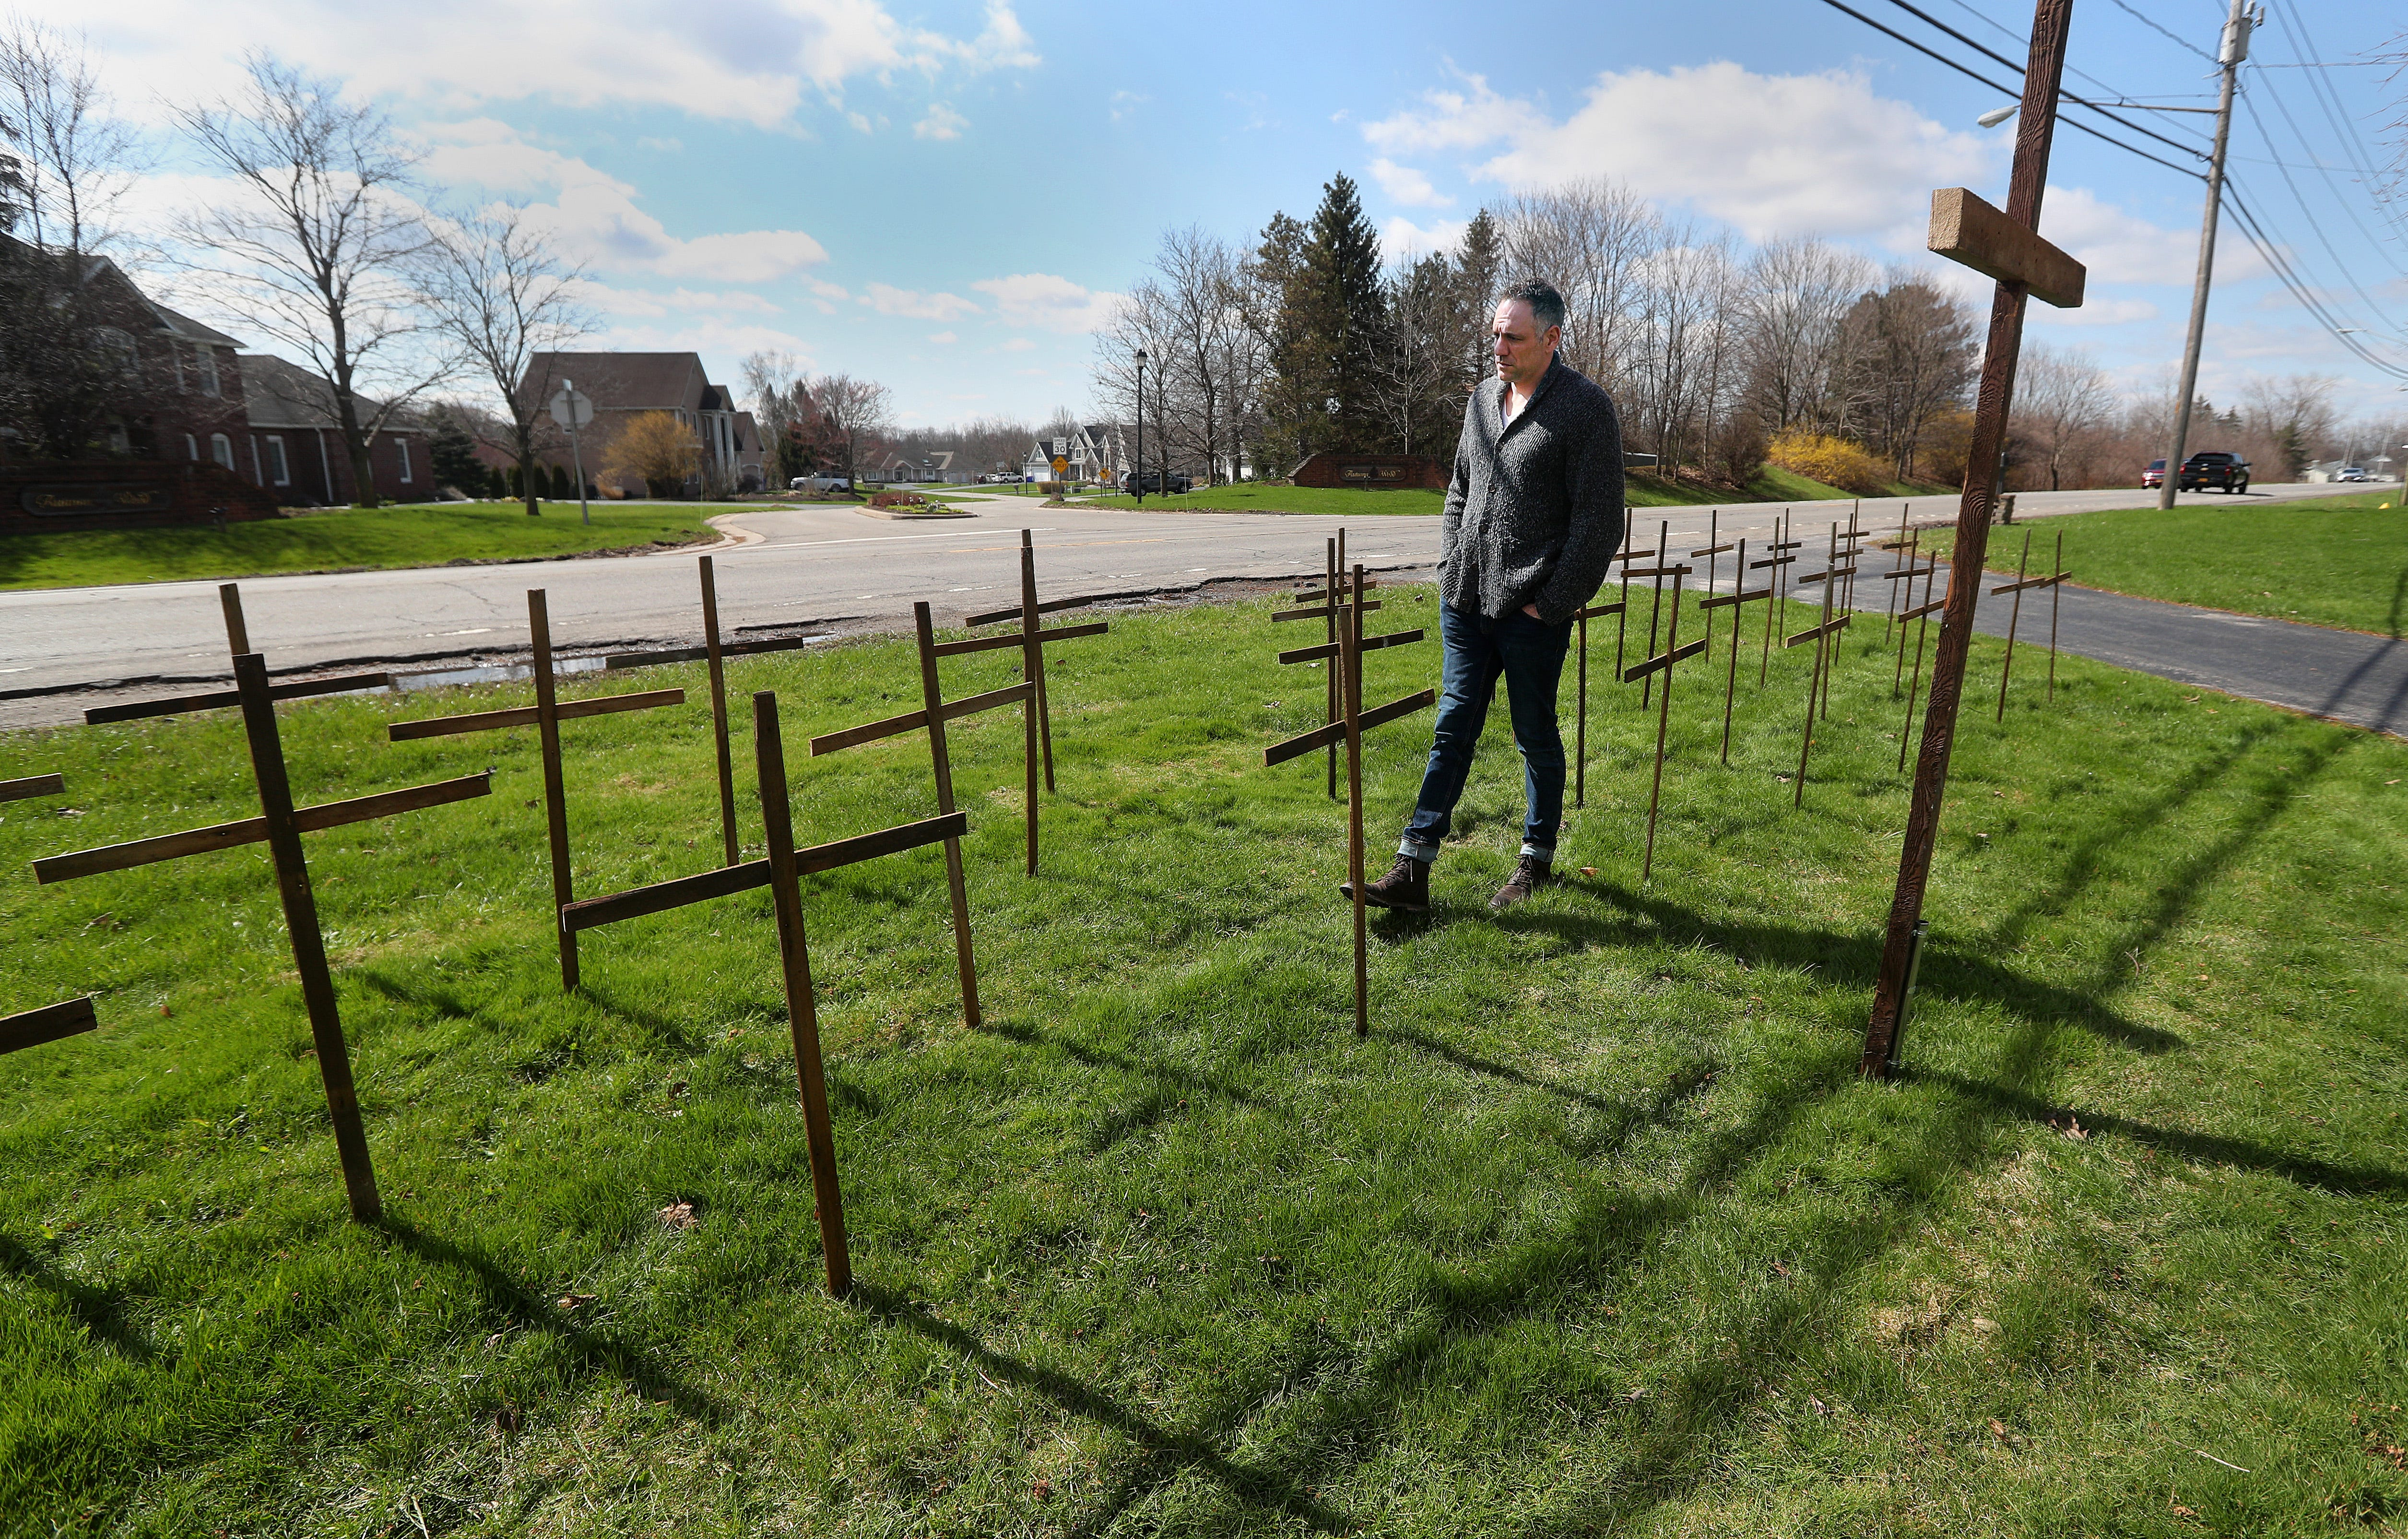 The virus continued its merciless path throughout 2020, claiming New Yorkers daily. In front of his Chili home in April, Jim Corbett walks through the rows of wooden crosses he's placed for each person in Monroe County who has died of COVID-19.